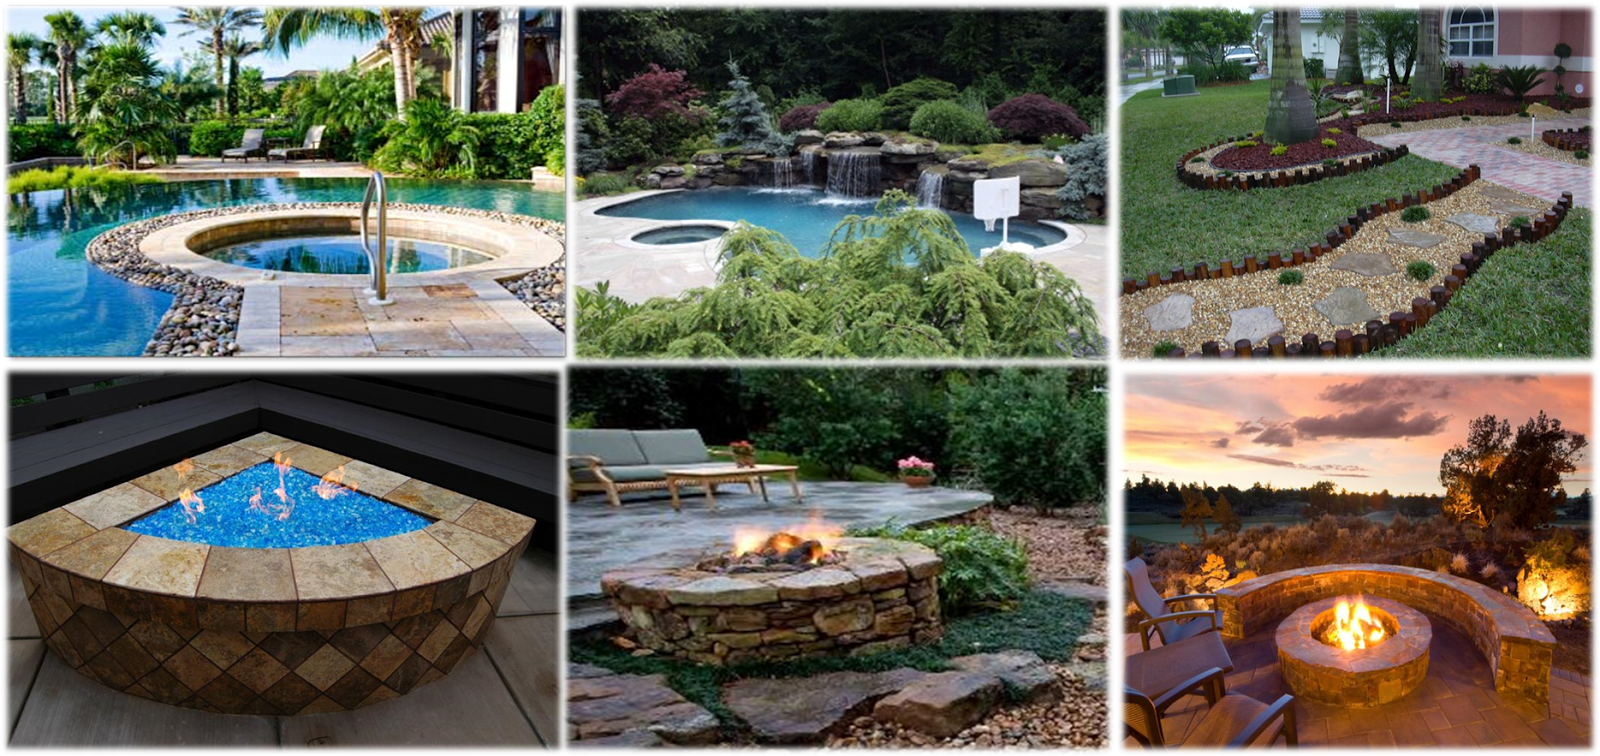 Landscaping A Pool Area : Yard landscaping van nuys